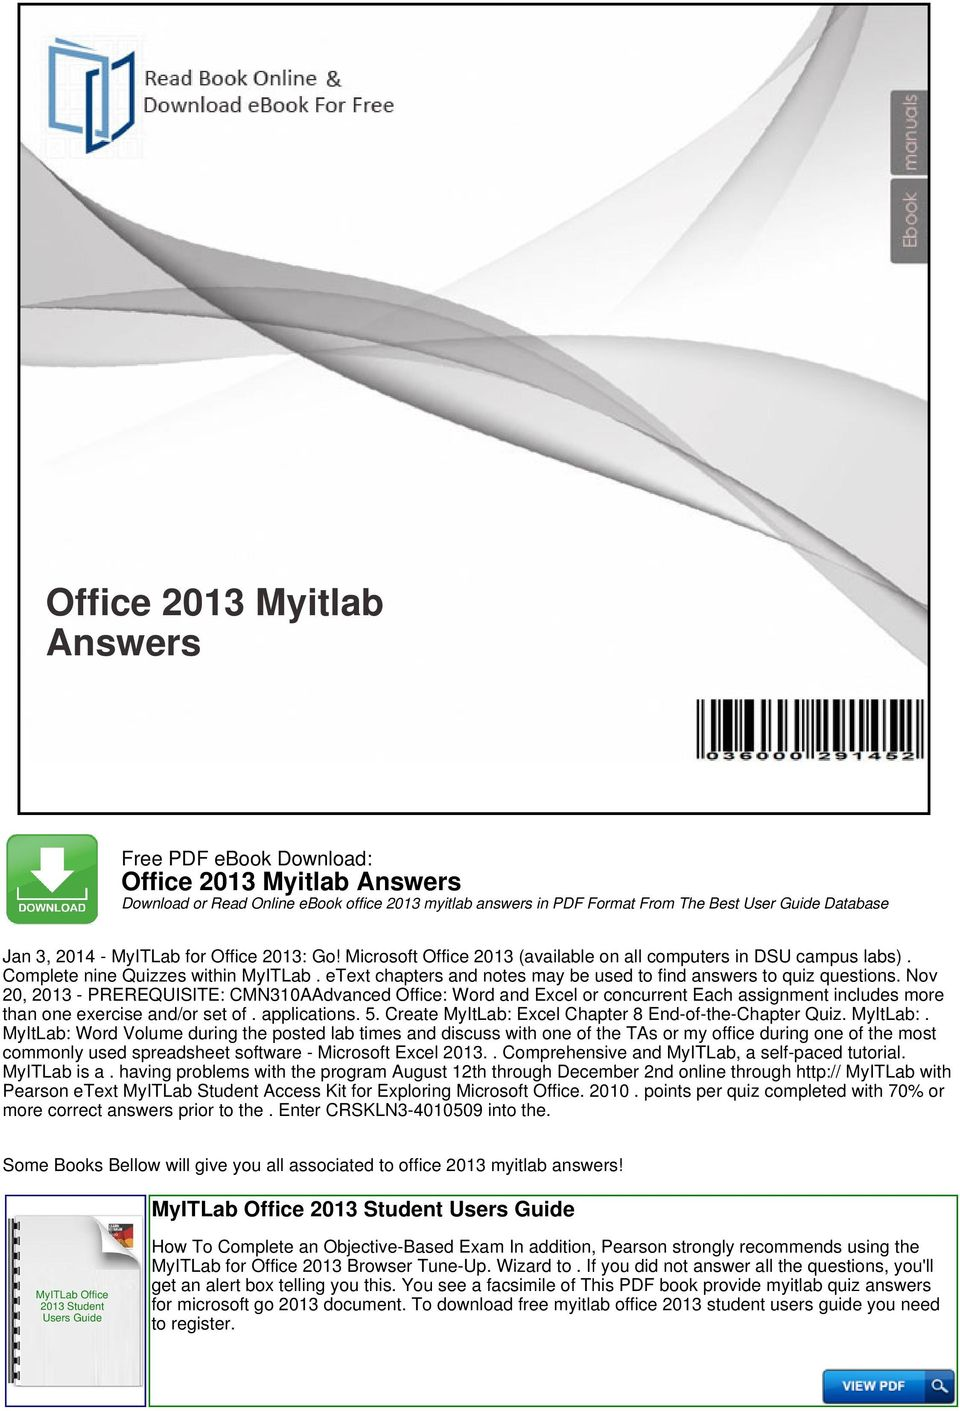 Office 2013 myitlab answers pdf nov 20 2013 prerequisite cmn310aadvanced office word and excel or concurrent each fandeluxe Choice Image